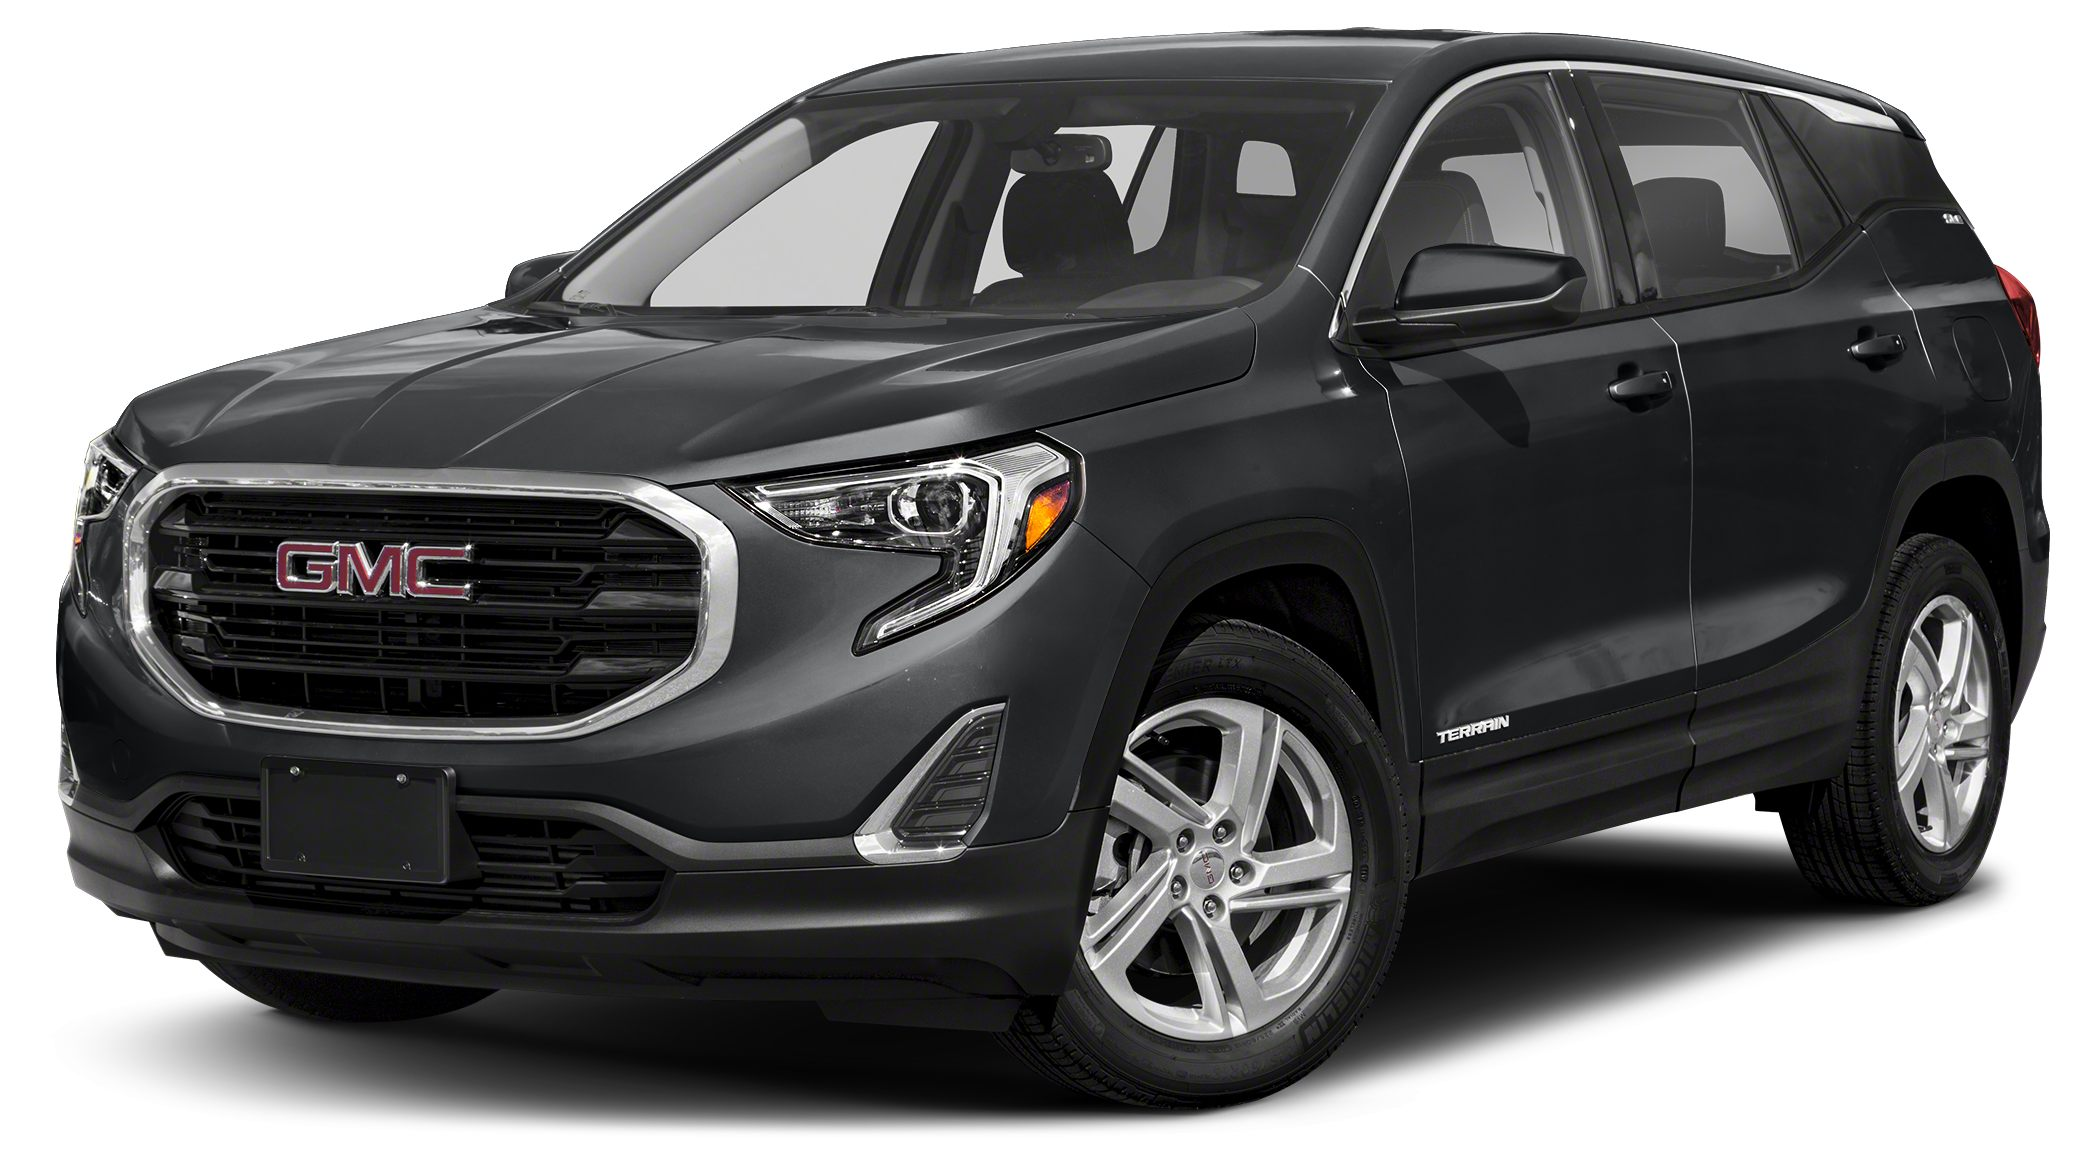 2018 GMC Terrain SLE This 2018 GMC Terrain SLE is a great option for folks looking for top feature